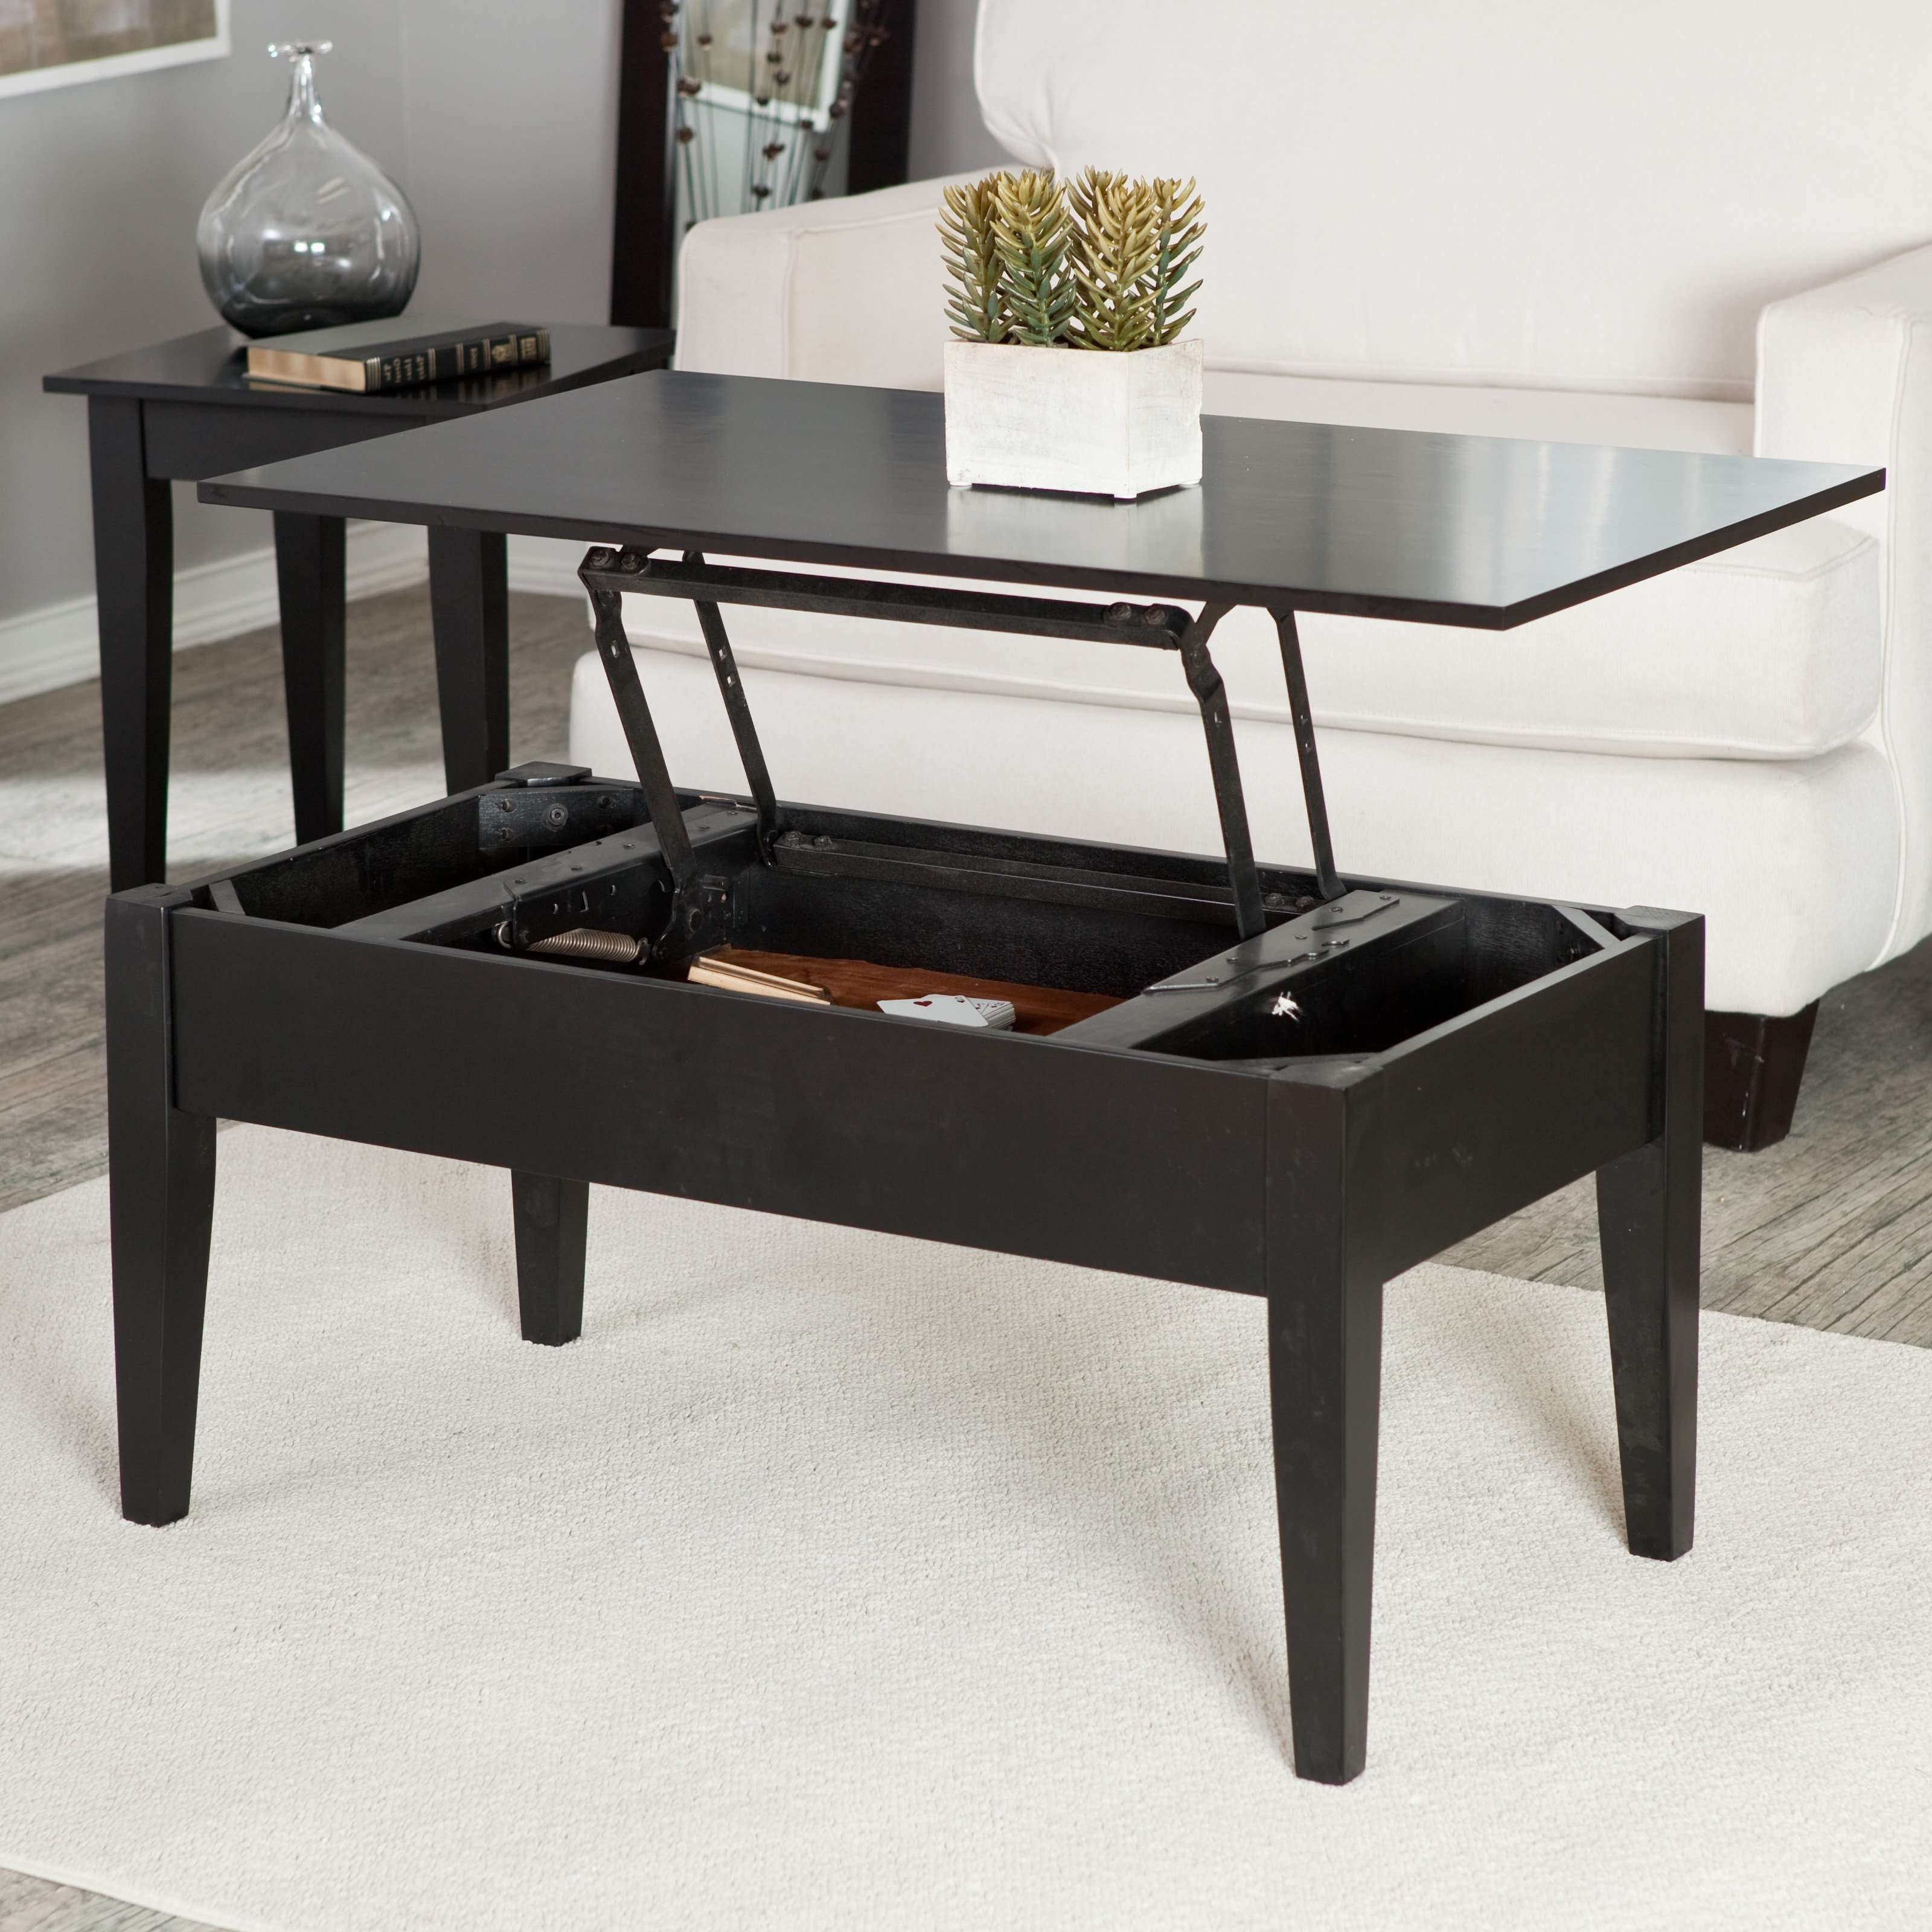 Hayneedle For Most Popular Lift Top Coffee Table Furniture (View 8 of 20)